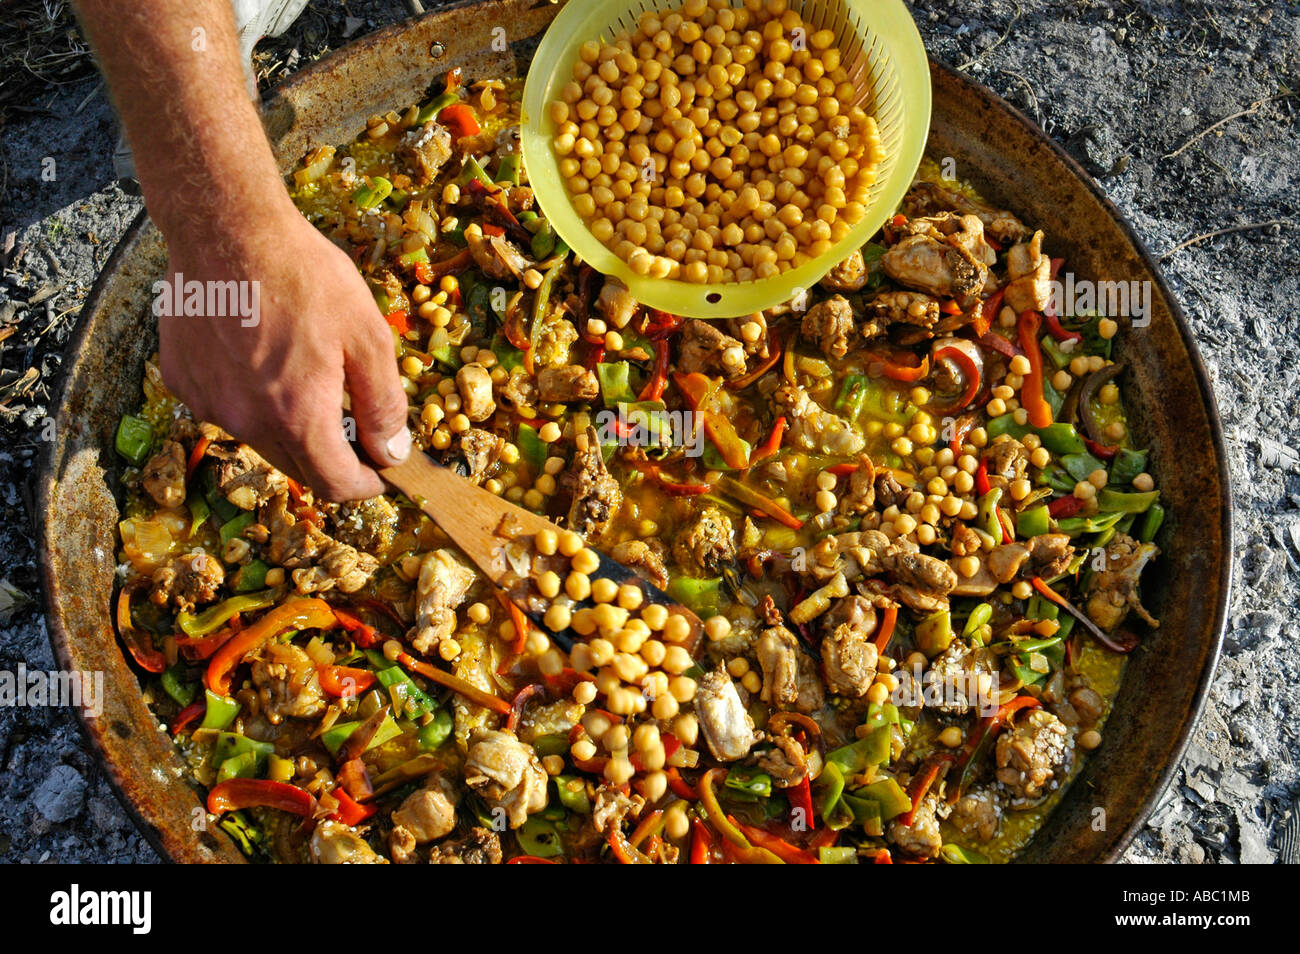 Chickpeas are added while cooking a Paella in a pan, spanish speciality, Spain - Stock Image